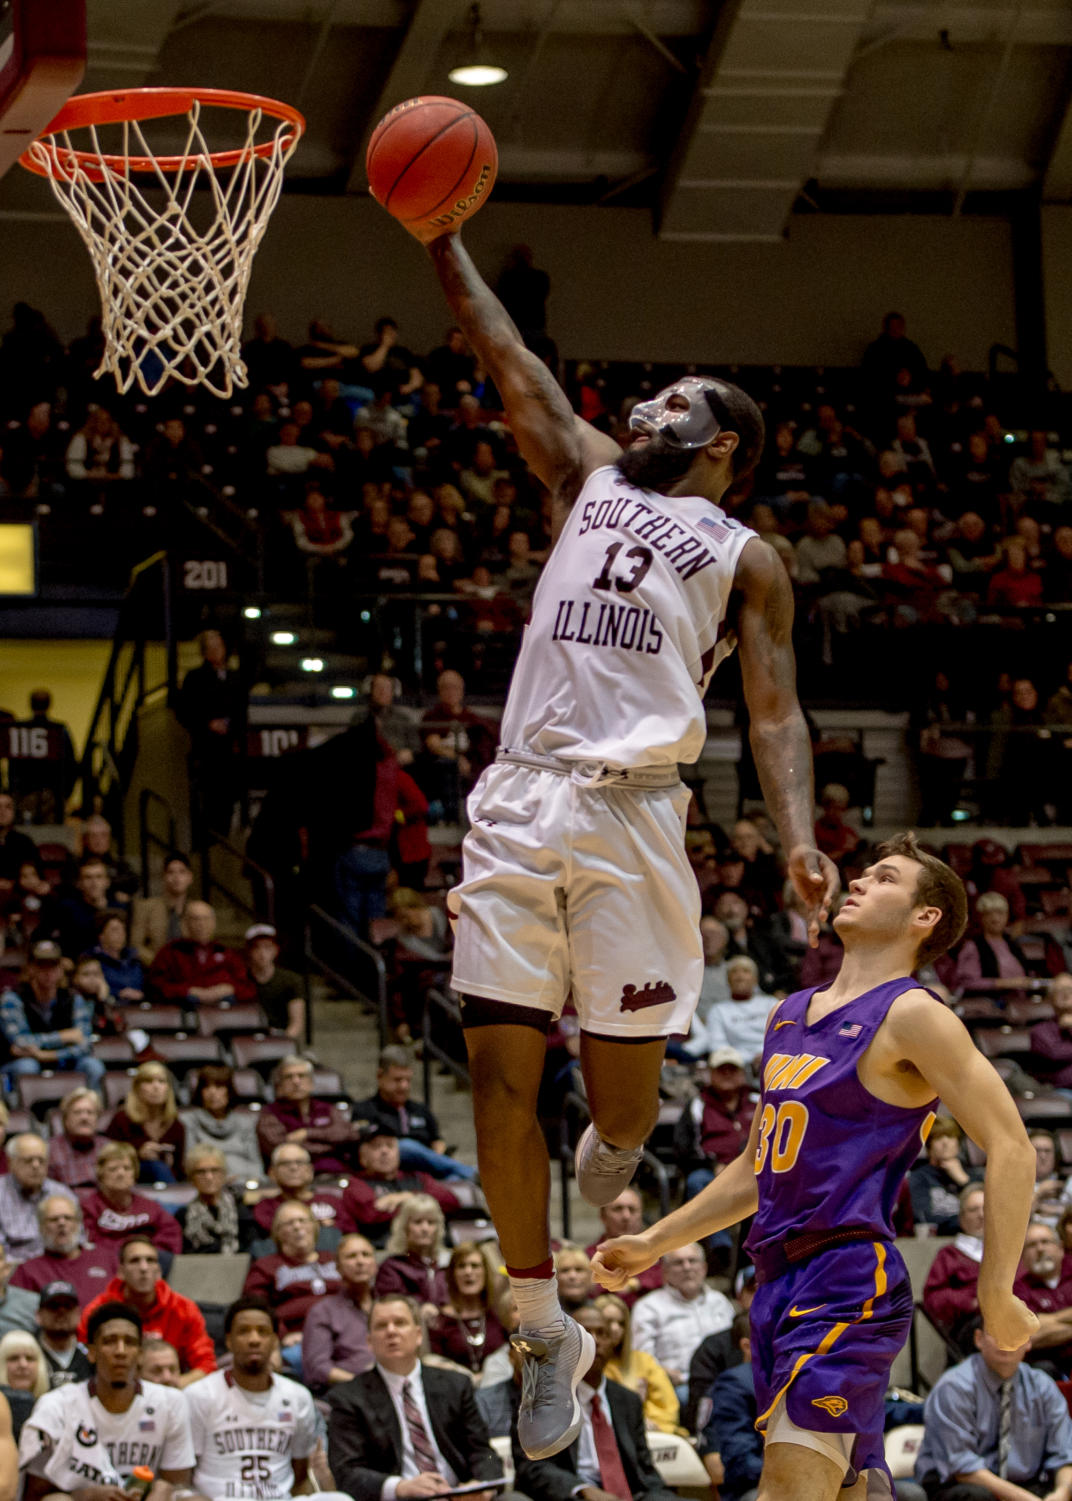 Junior+guard+Sean+Lloyd+Jr.+goes+for+a+basket+Sunday%2C+Jan.+21%2C+2018%2C+during+the+Salukis%27+64-53+victory+over+the+University+of+Northern+Iowa+Panthers+at+SIU+Arena.+%28Brian+Munoz+%7C+%40BrianMMunoz%29